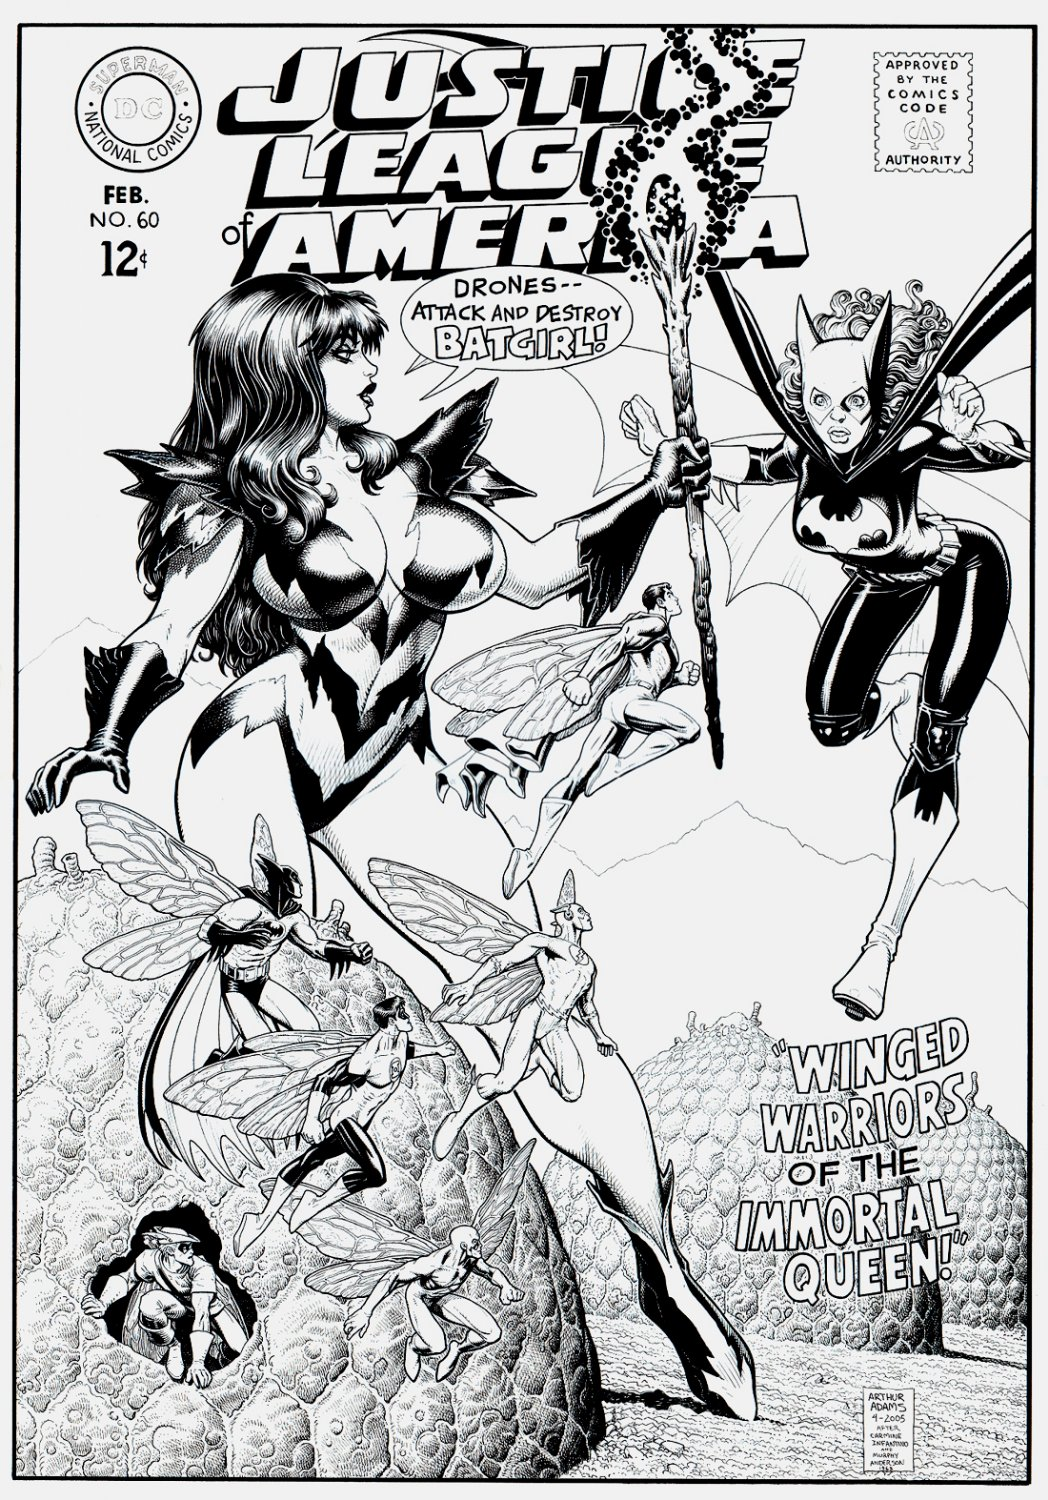 Justice League of America #60 Huge Cover Reinterpretation (2005)